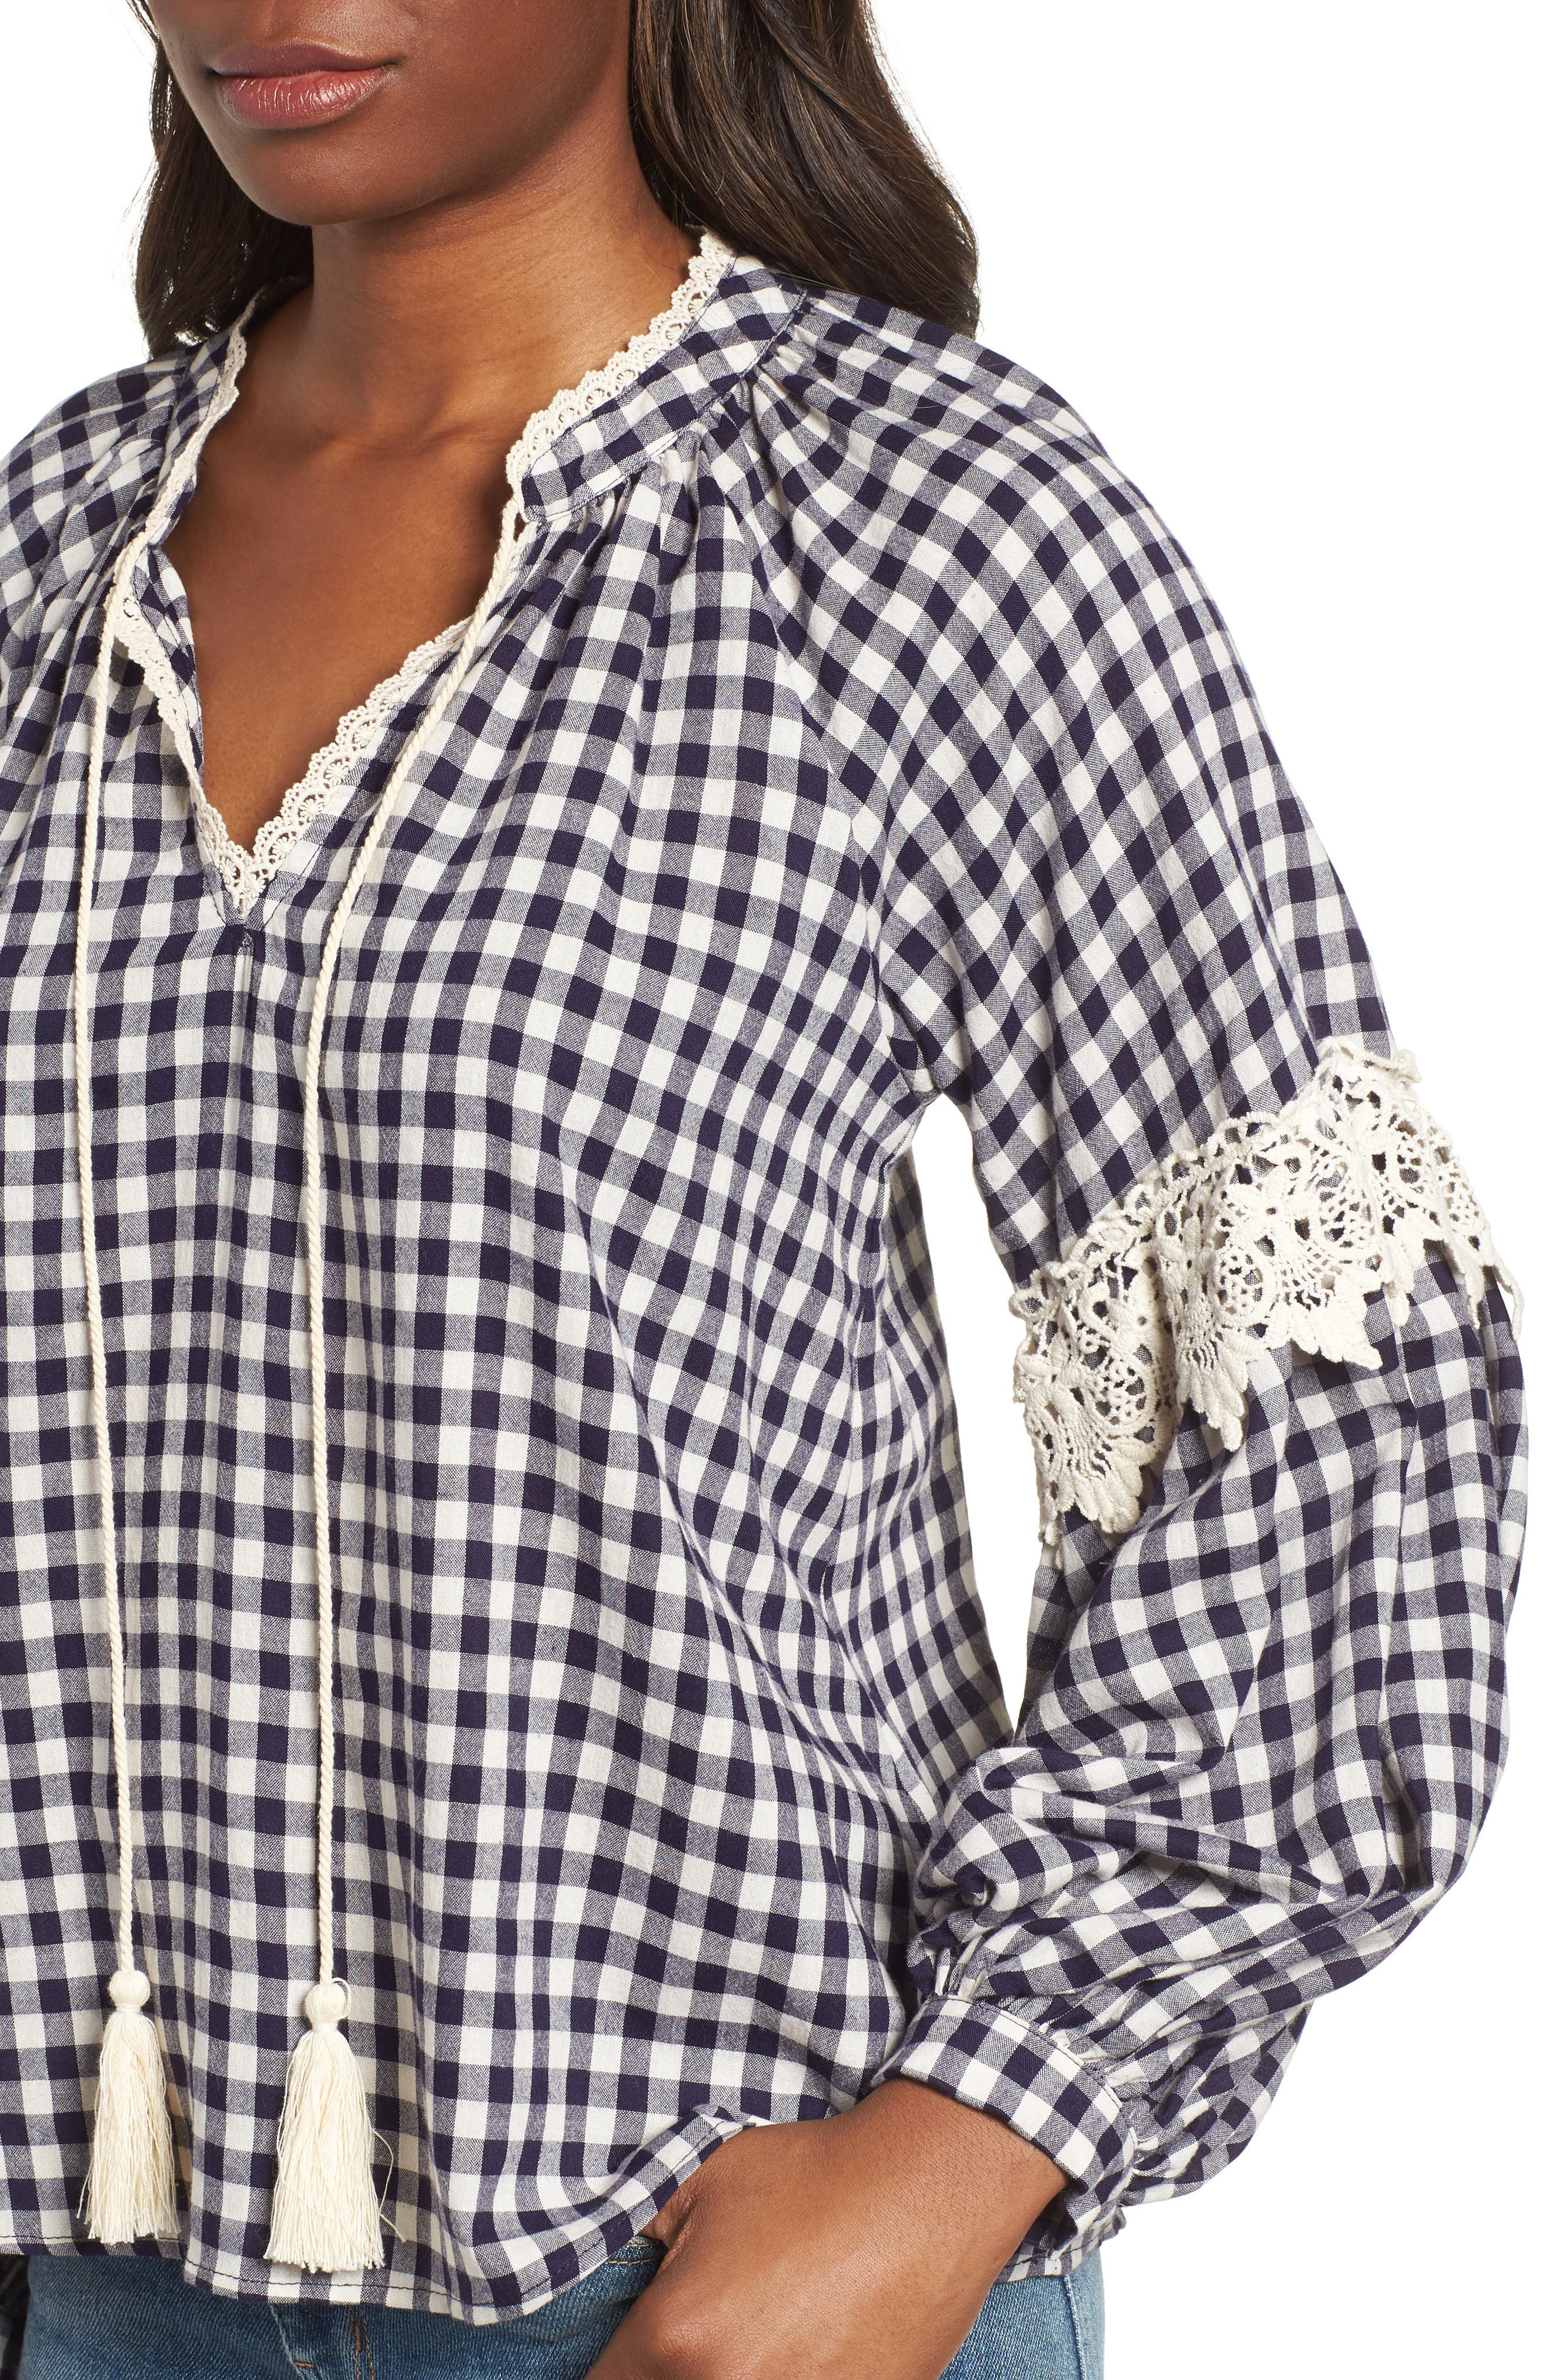 Gingham Check Peasant Top,                             Alternate thumbnail 4, color,                             Navy White Gingham